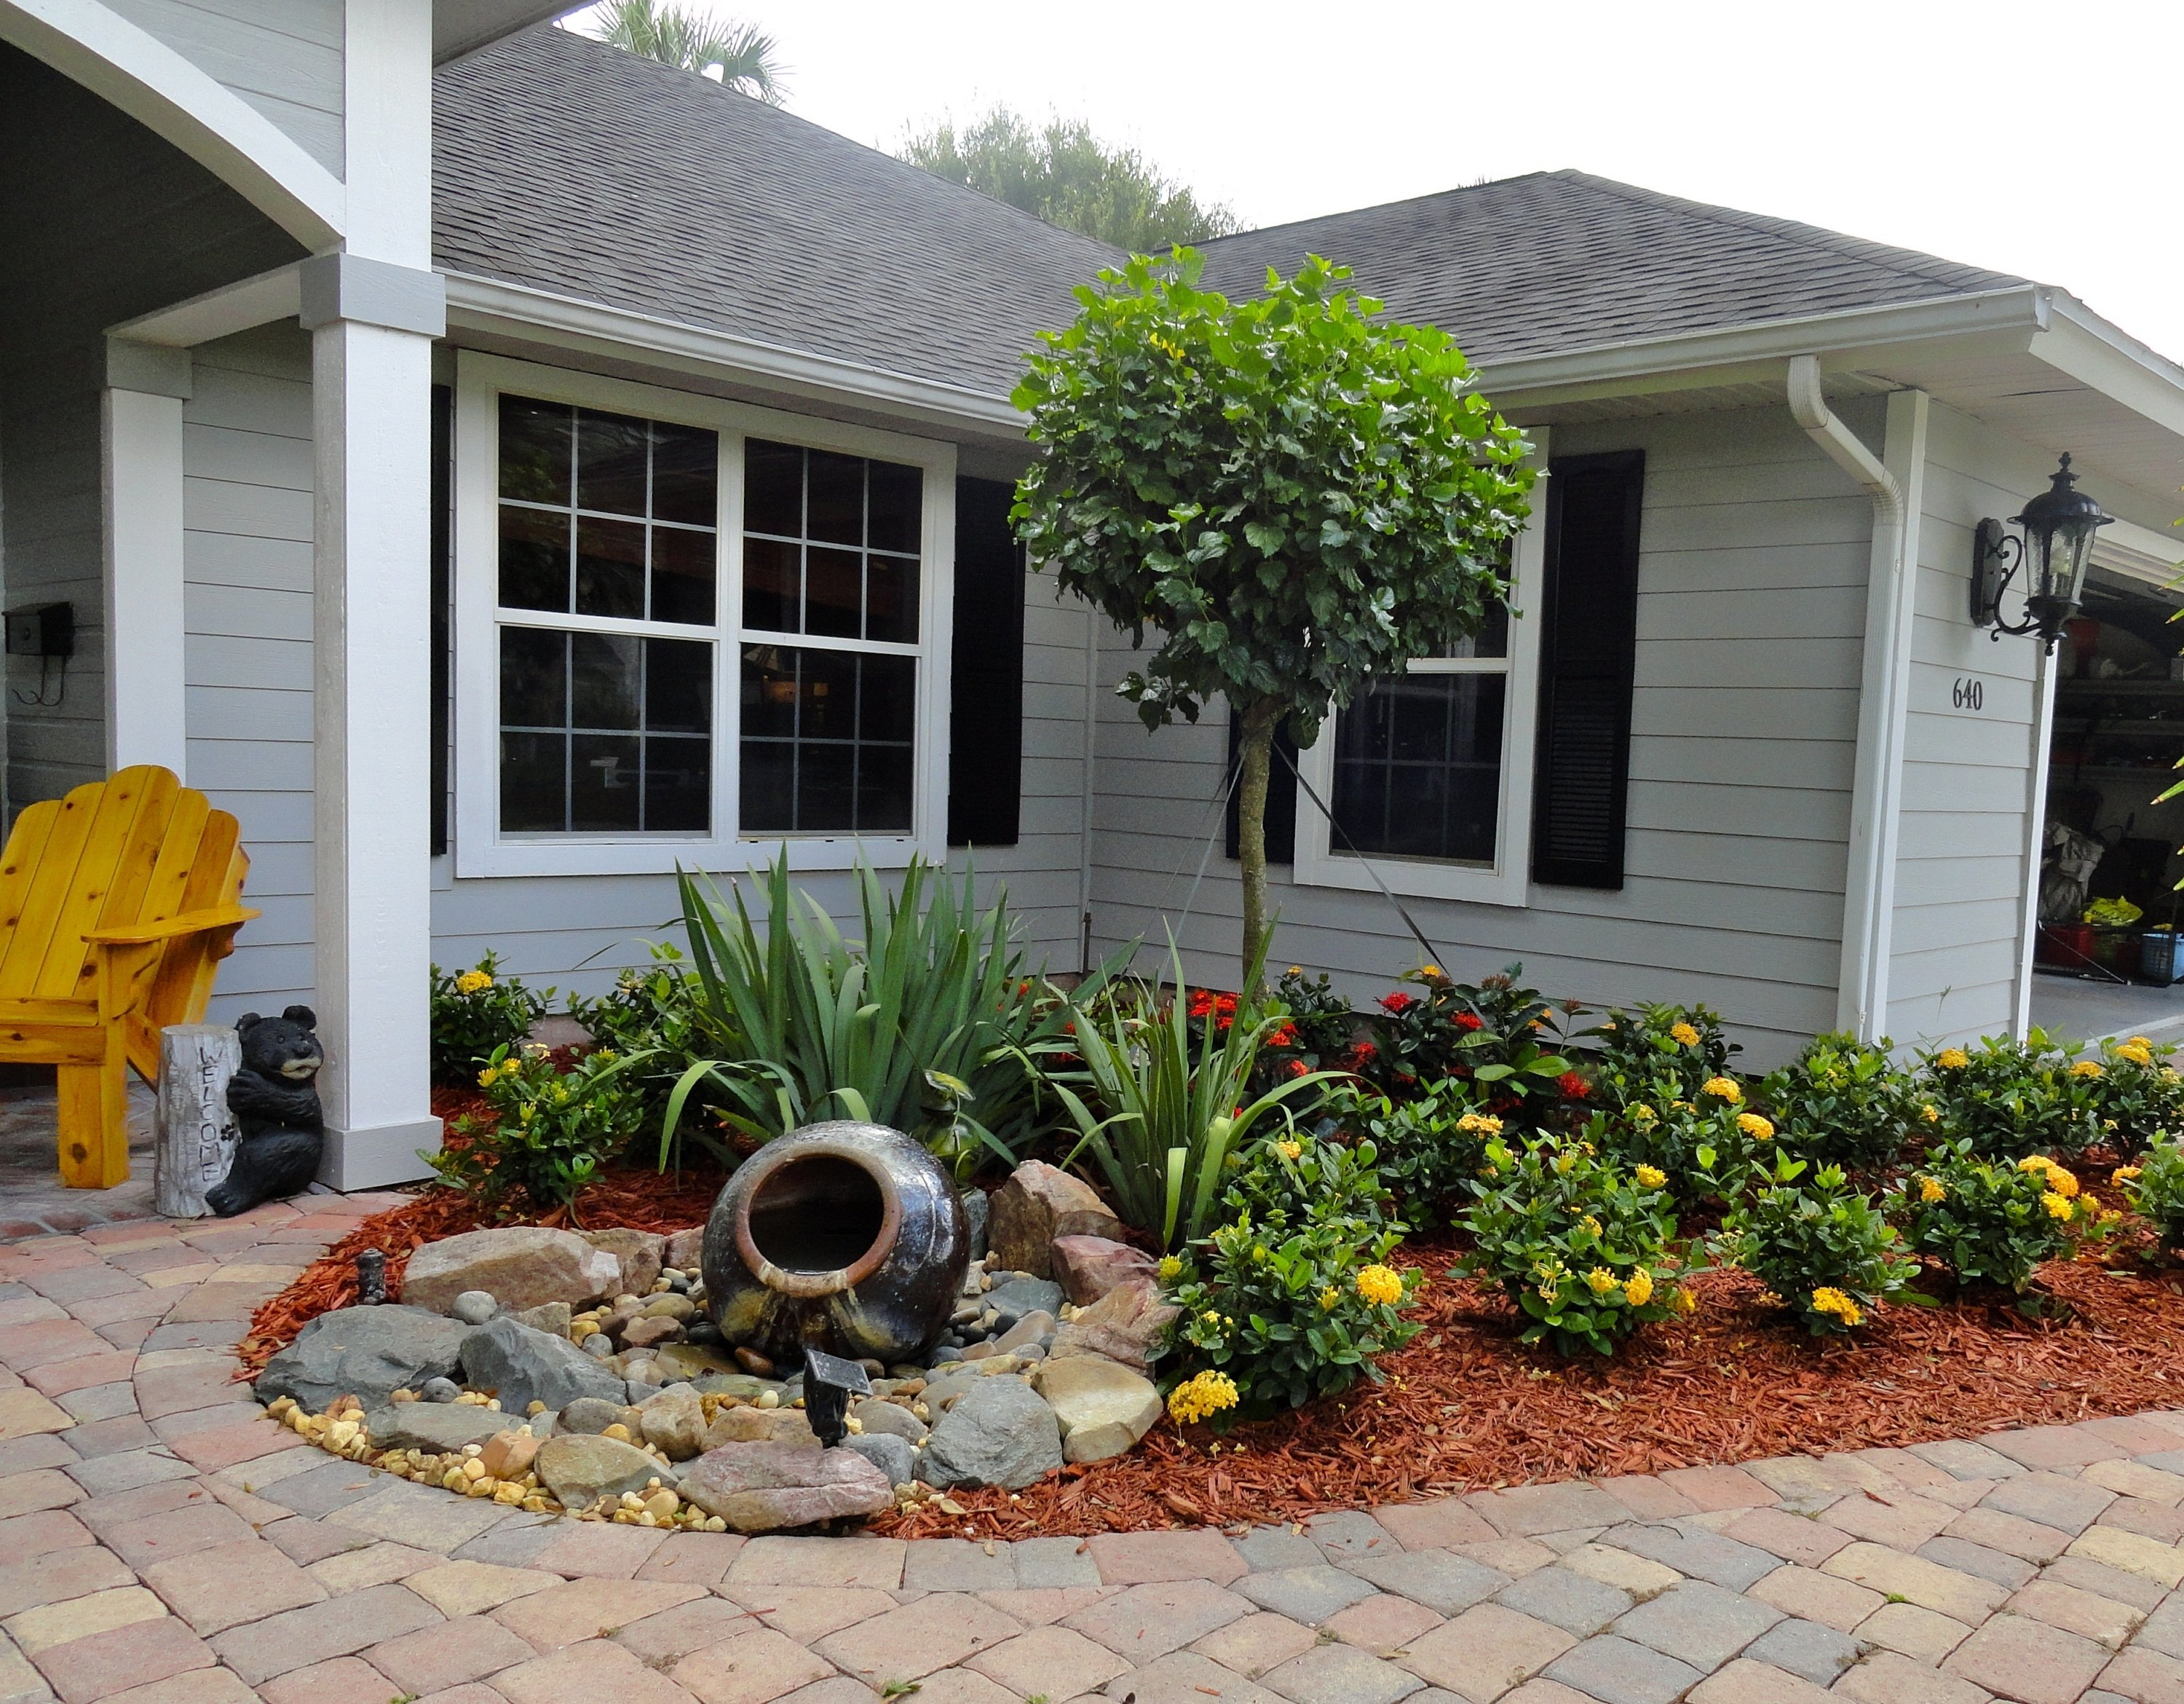 10 Trendy Simple Front Yard Landscaping Ideas excellent simple landscaping ideas for small front yards pictures 2020